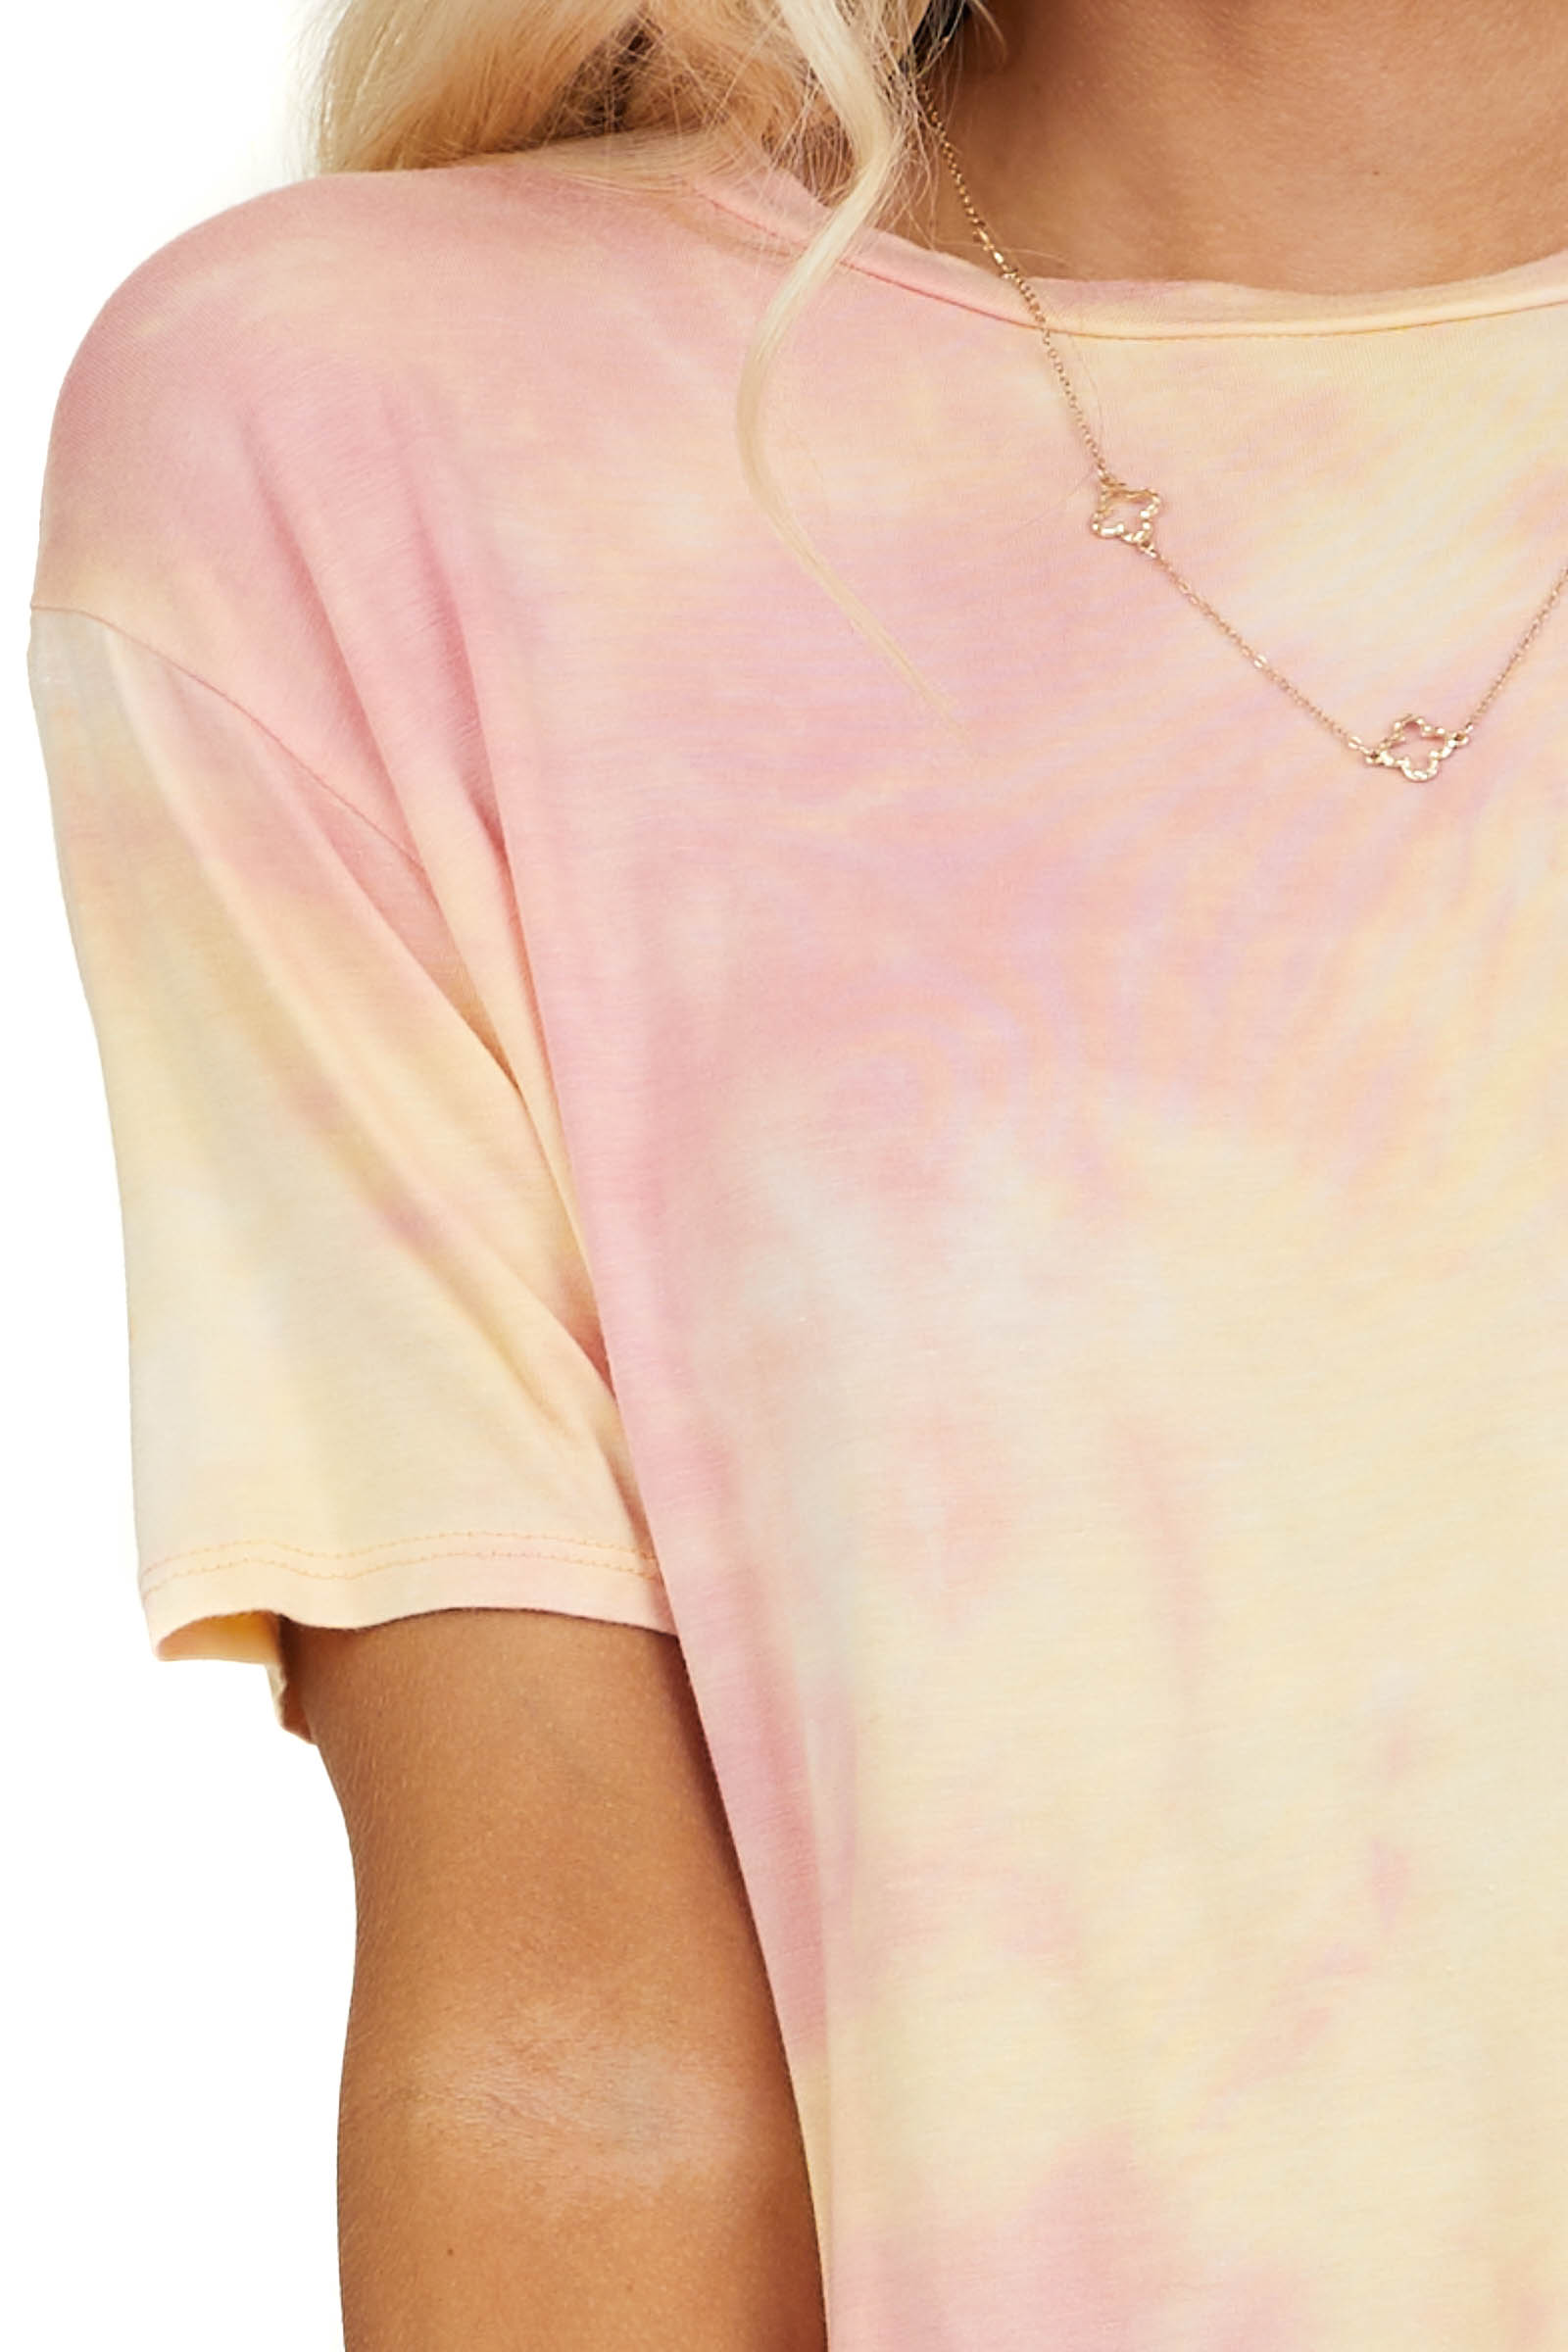 Coral and Peach Tie Dye Short Sleeve Super Soft Knit Top